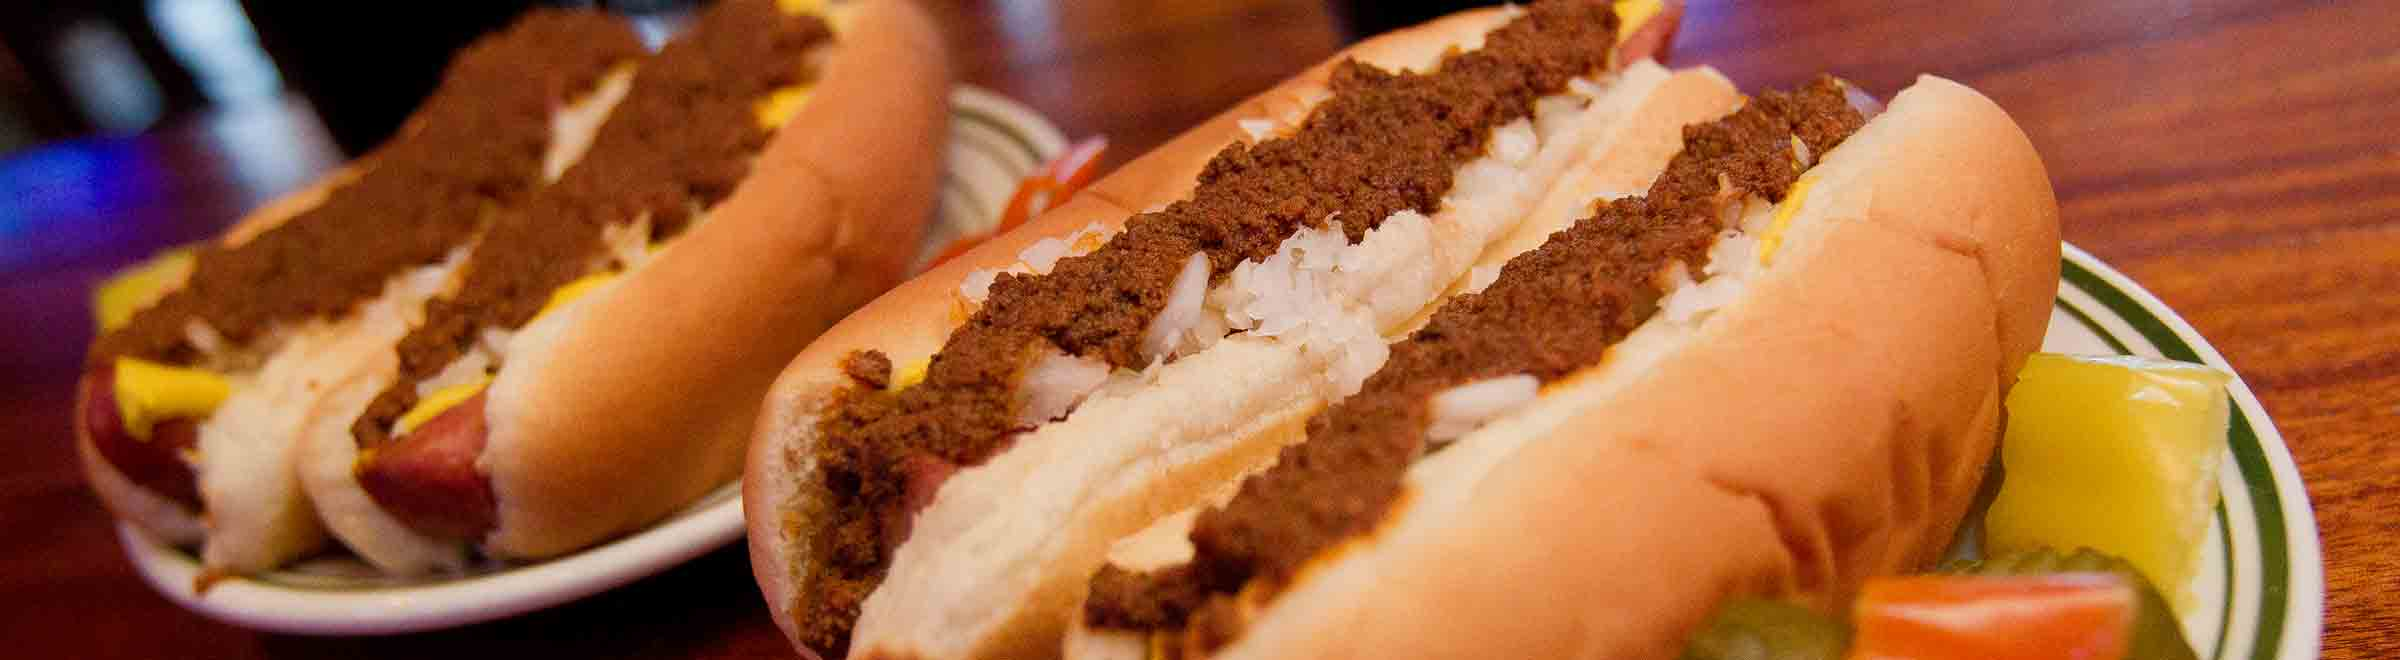 Close up of four Tony Packos Famous Hungarian Hot Dogs topped with Chili on plates